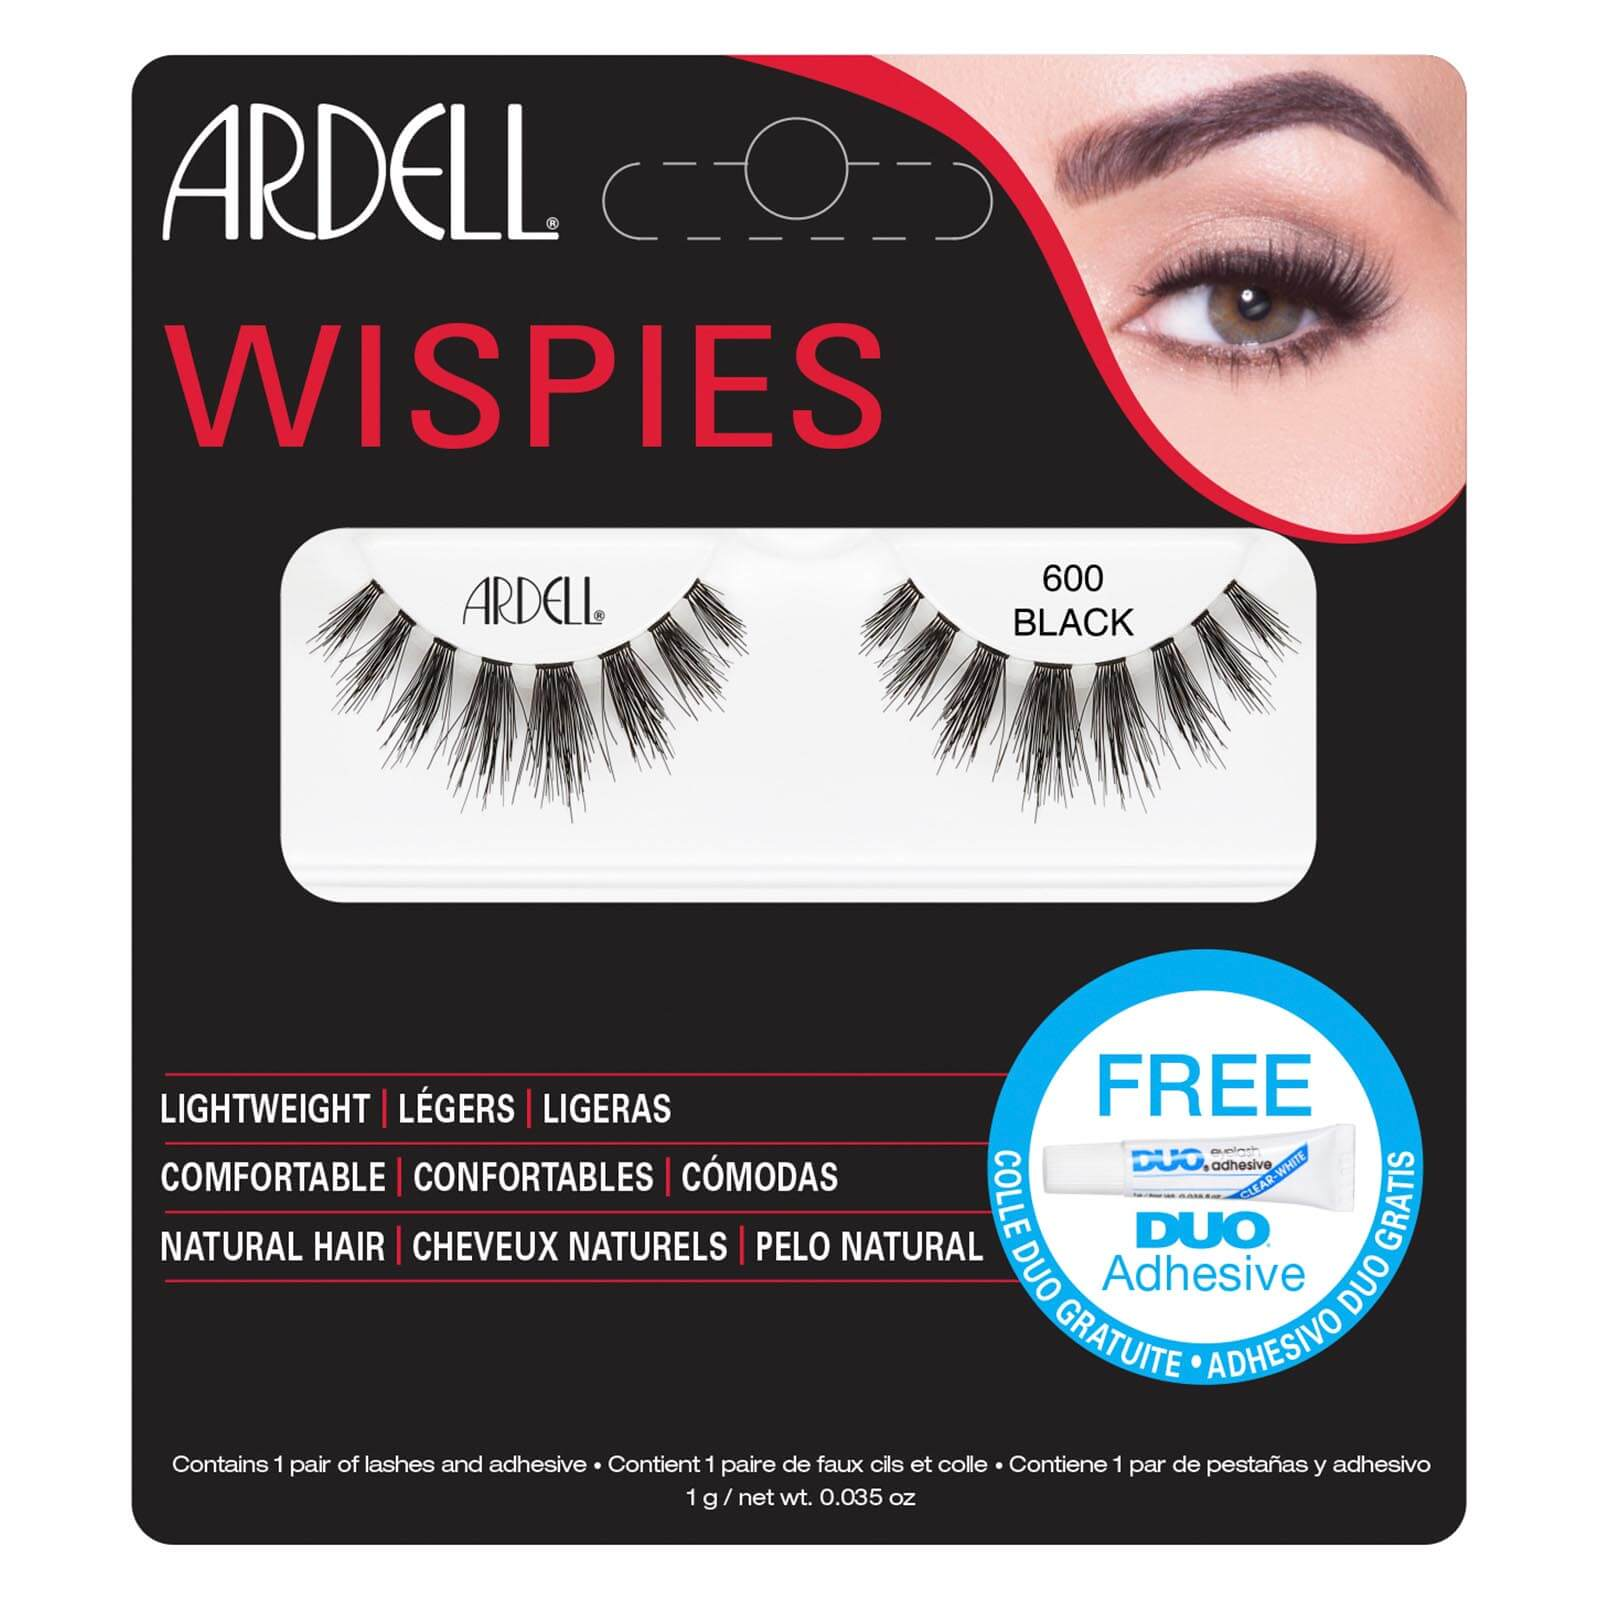 2a8ced619d3 Ardell Wispies Cluster False Eyelashes - 600 Black | Free Shipping |  Lookfantastic